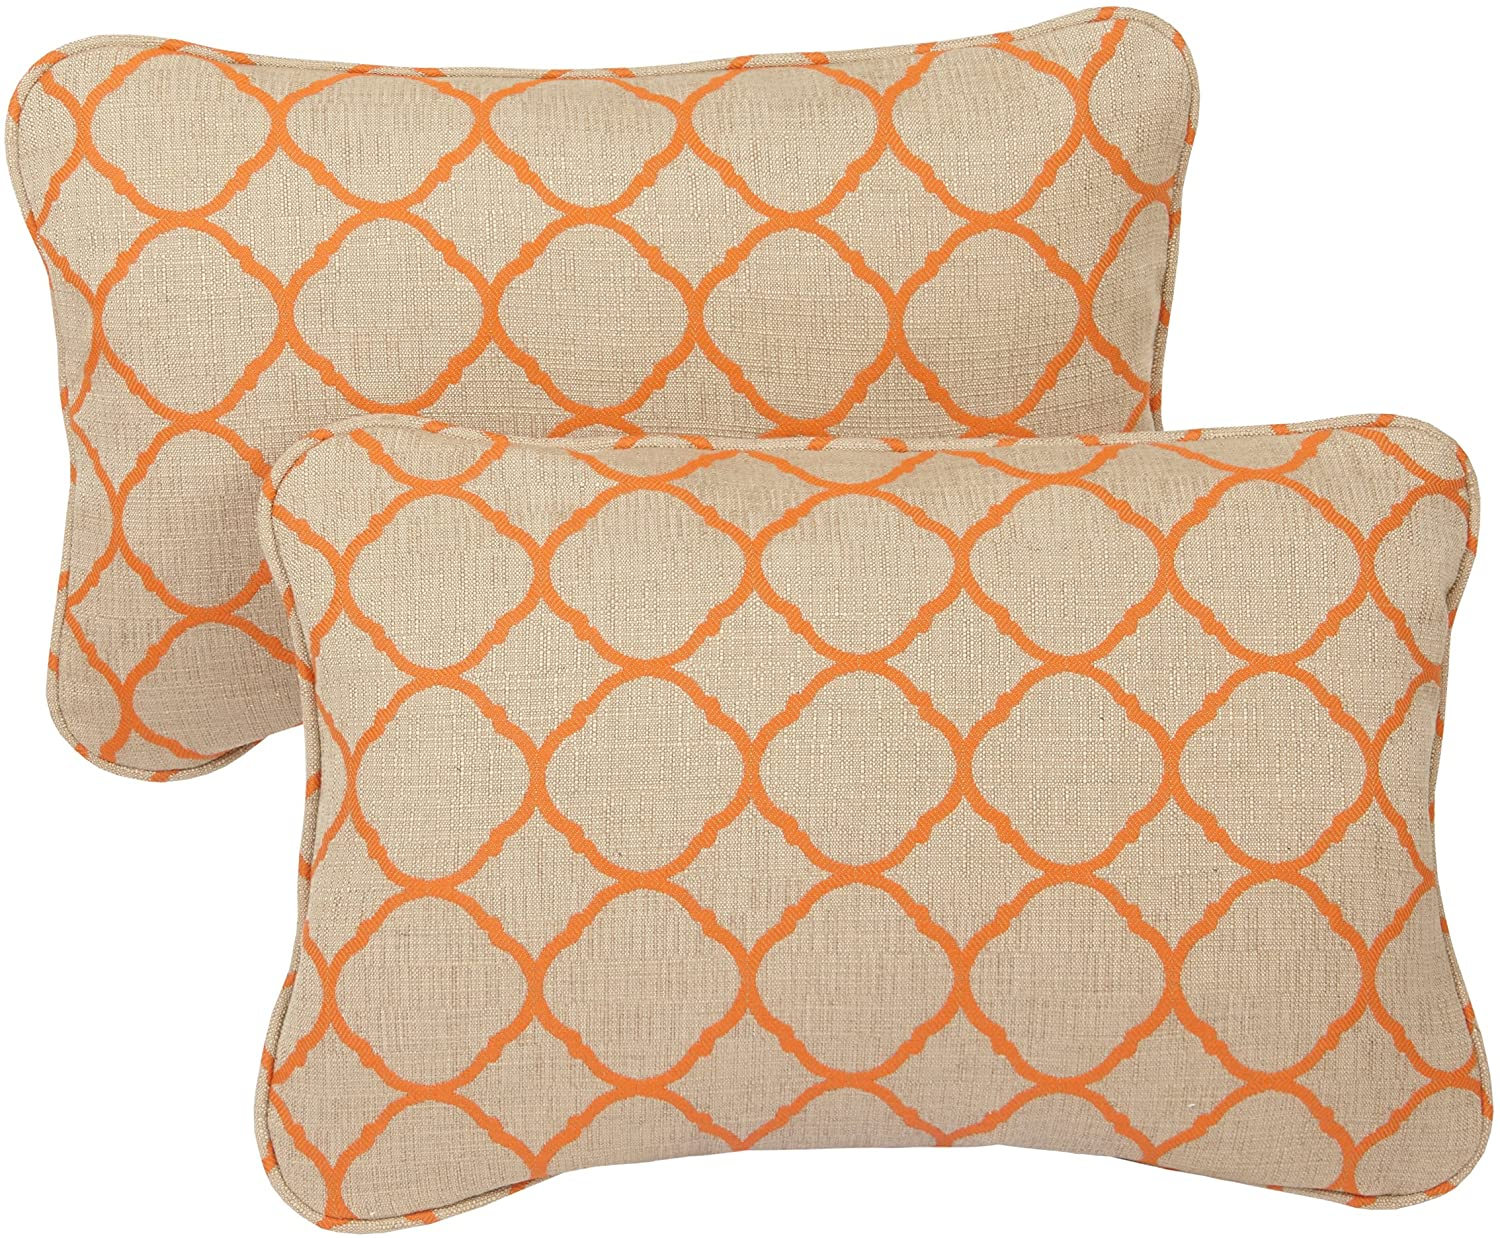 Mozaic Company Sunbrella Indoor/ Outdoor 13 by 20-inch Corded Pillow, Accord Koi, Set of 2